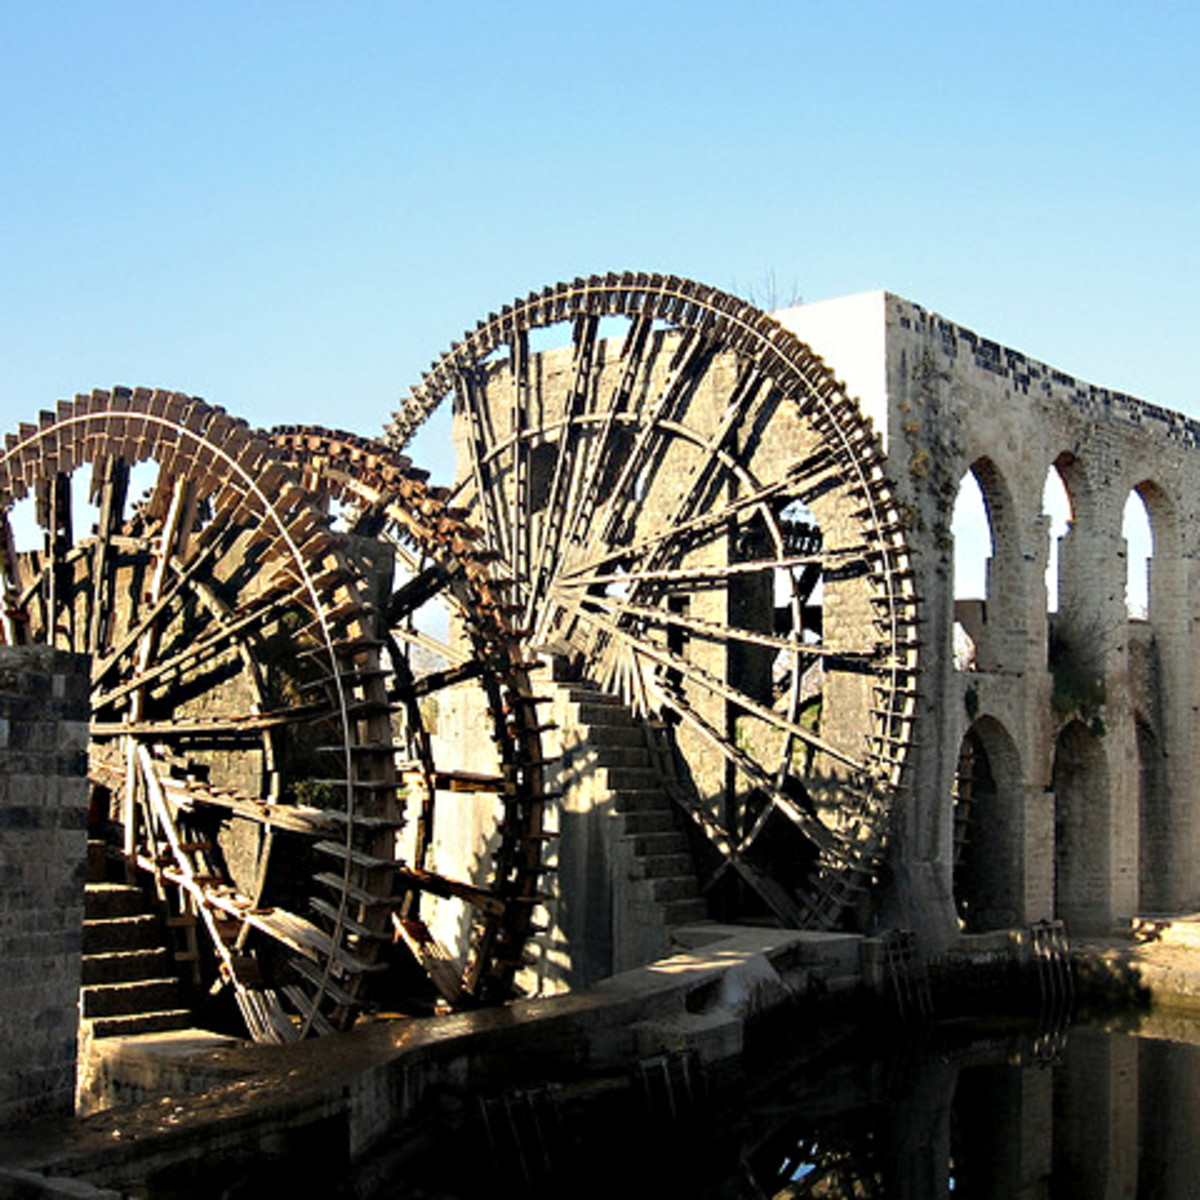 The Norias - waterwheels - of Hama. Still working after hundreds of years but under attack during the Syrian Civil War